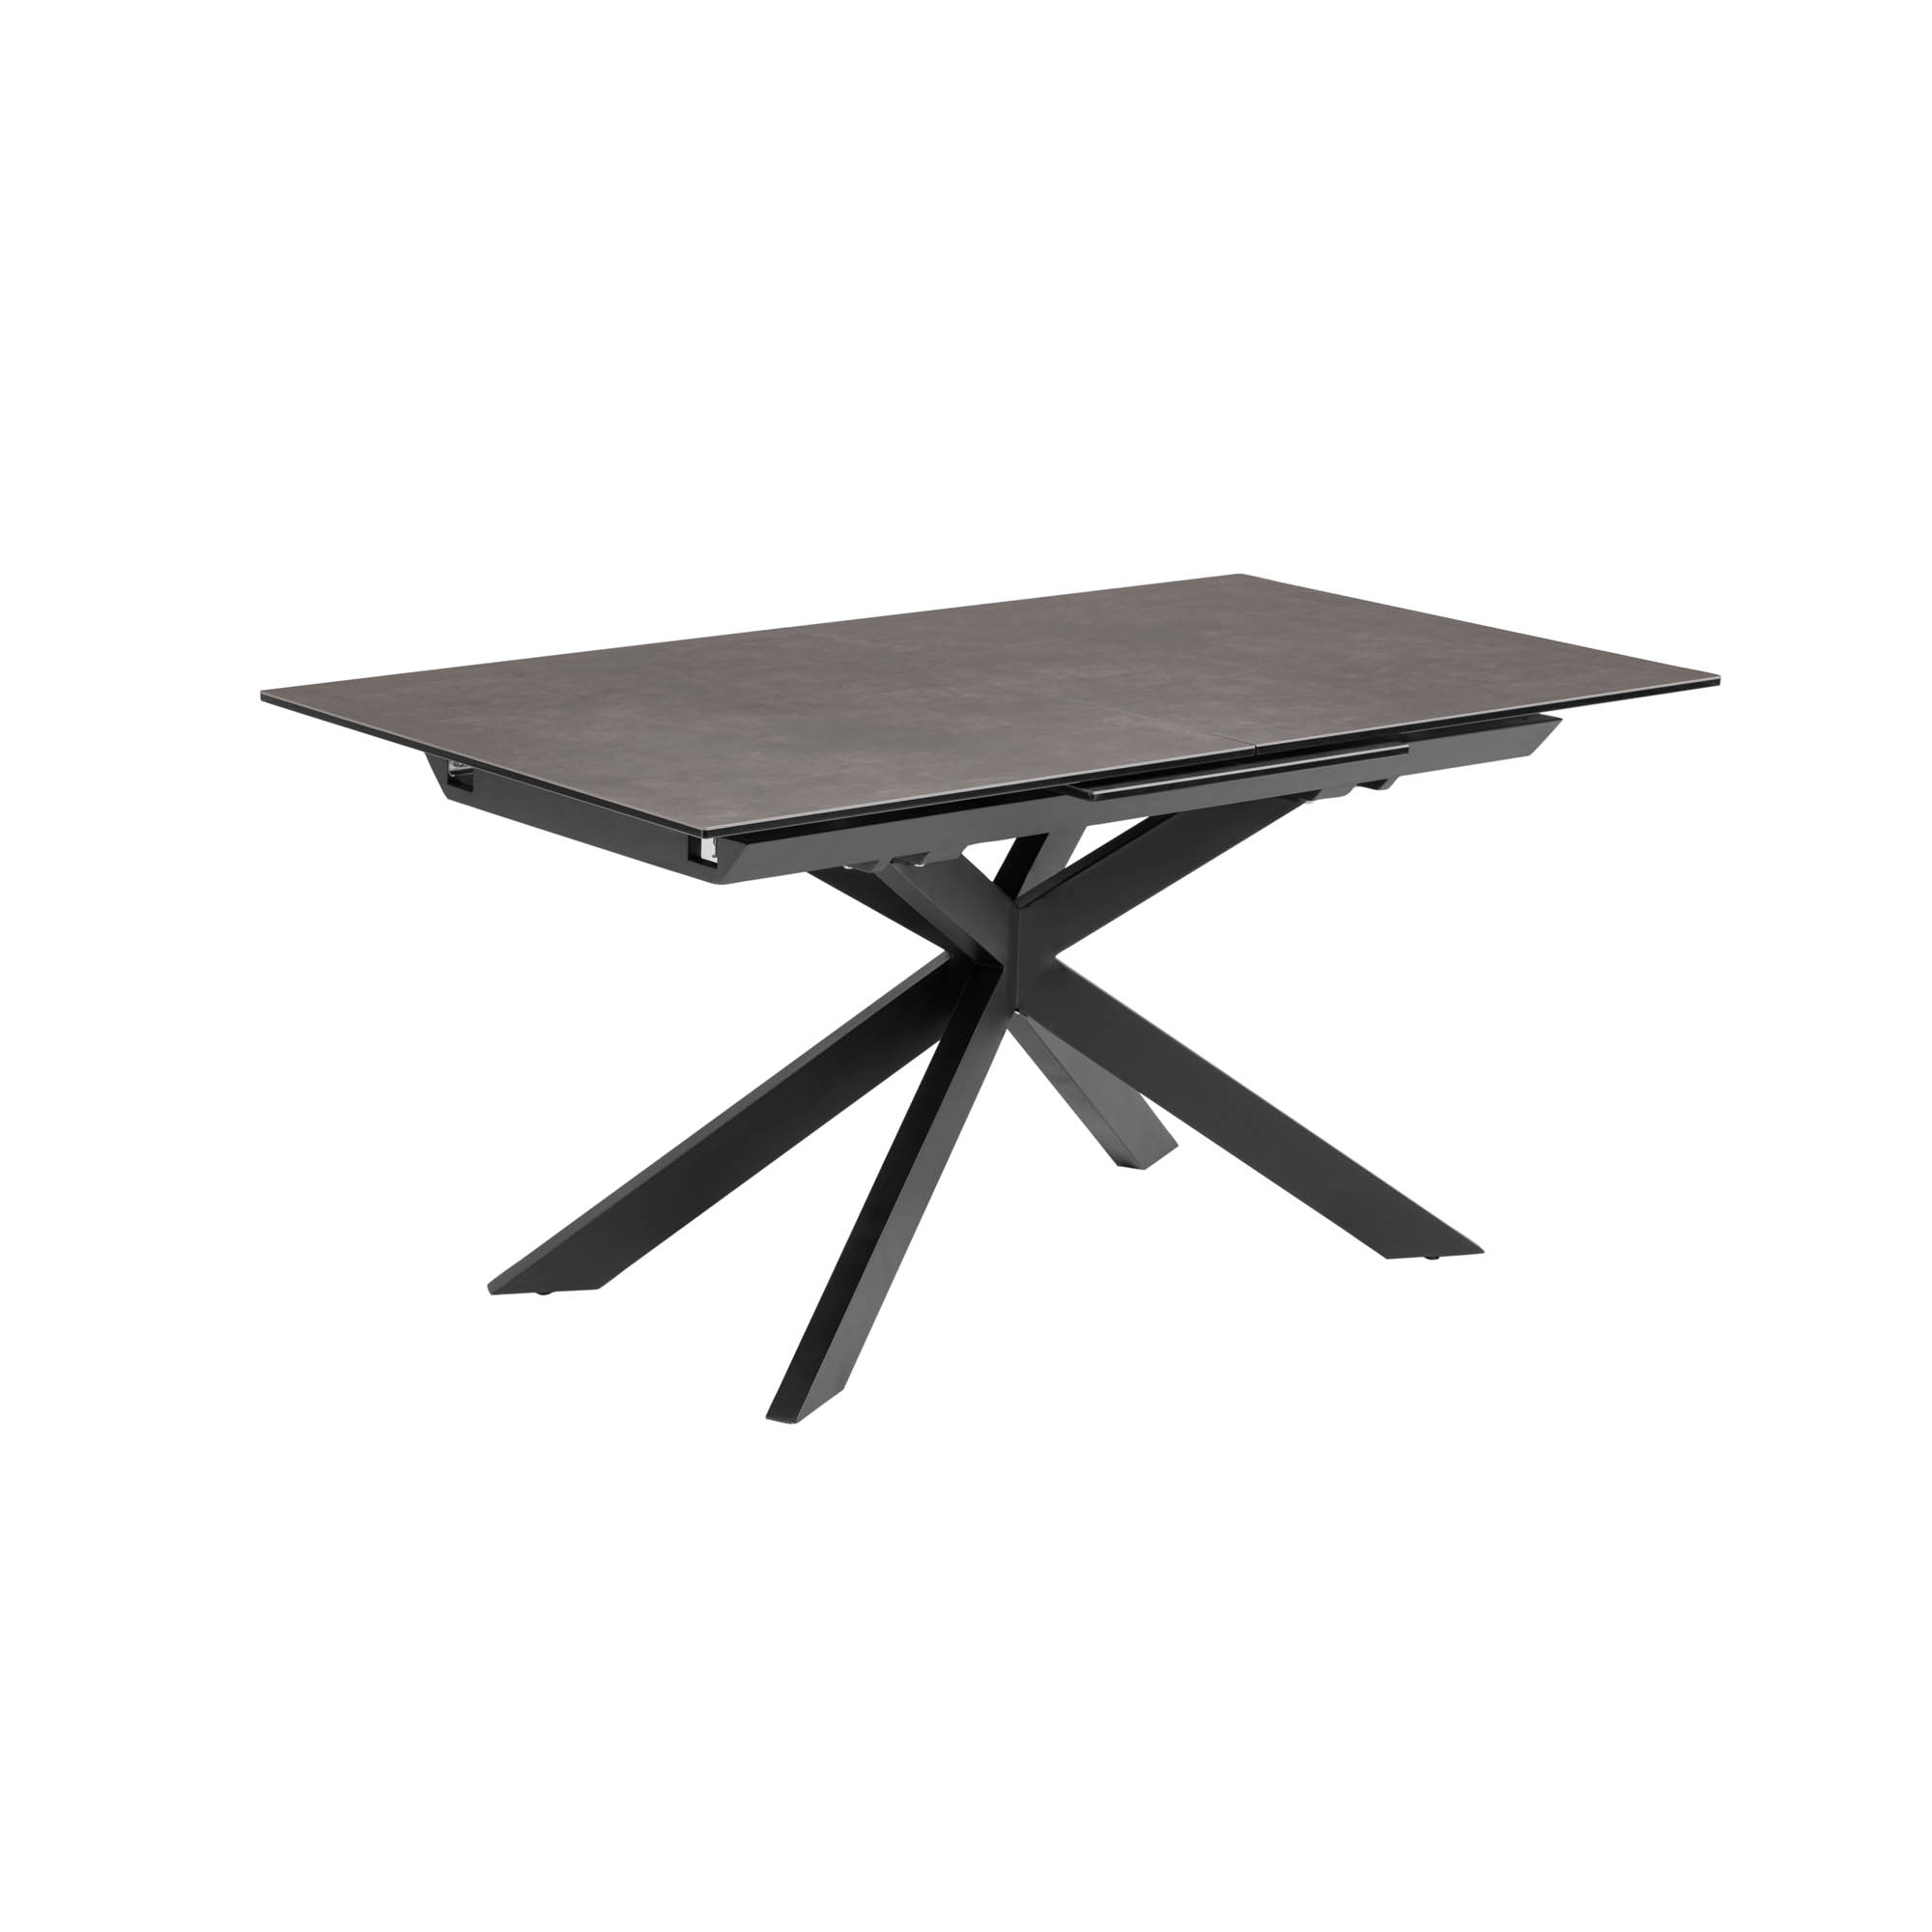 Kave home - table extensible atminda 160 (210)...